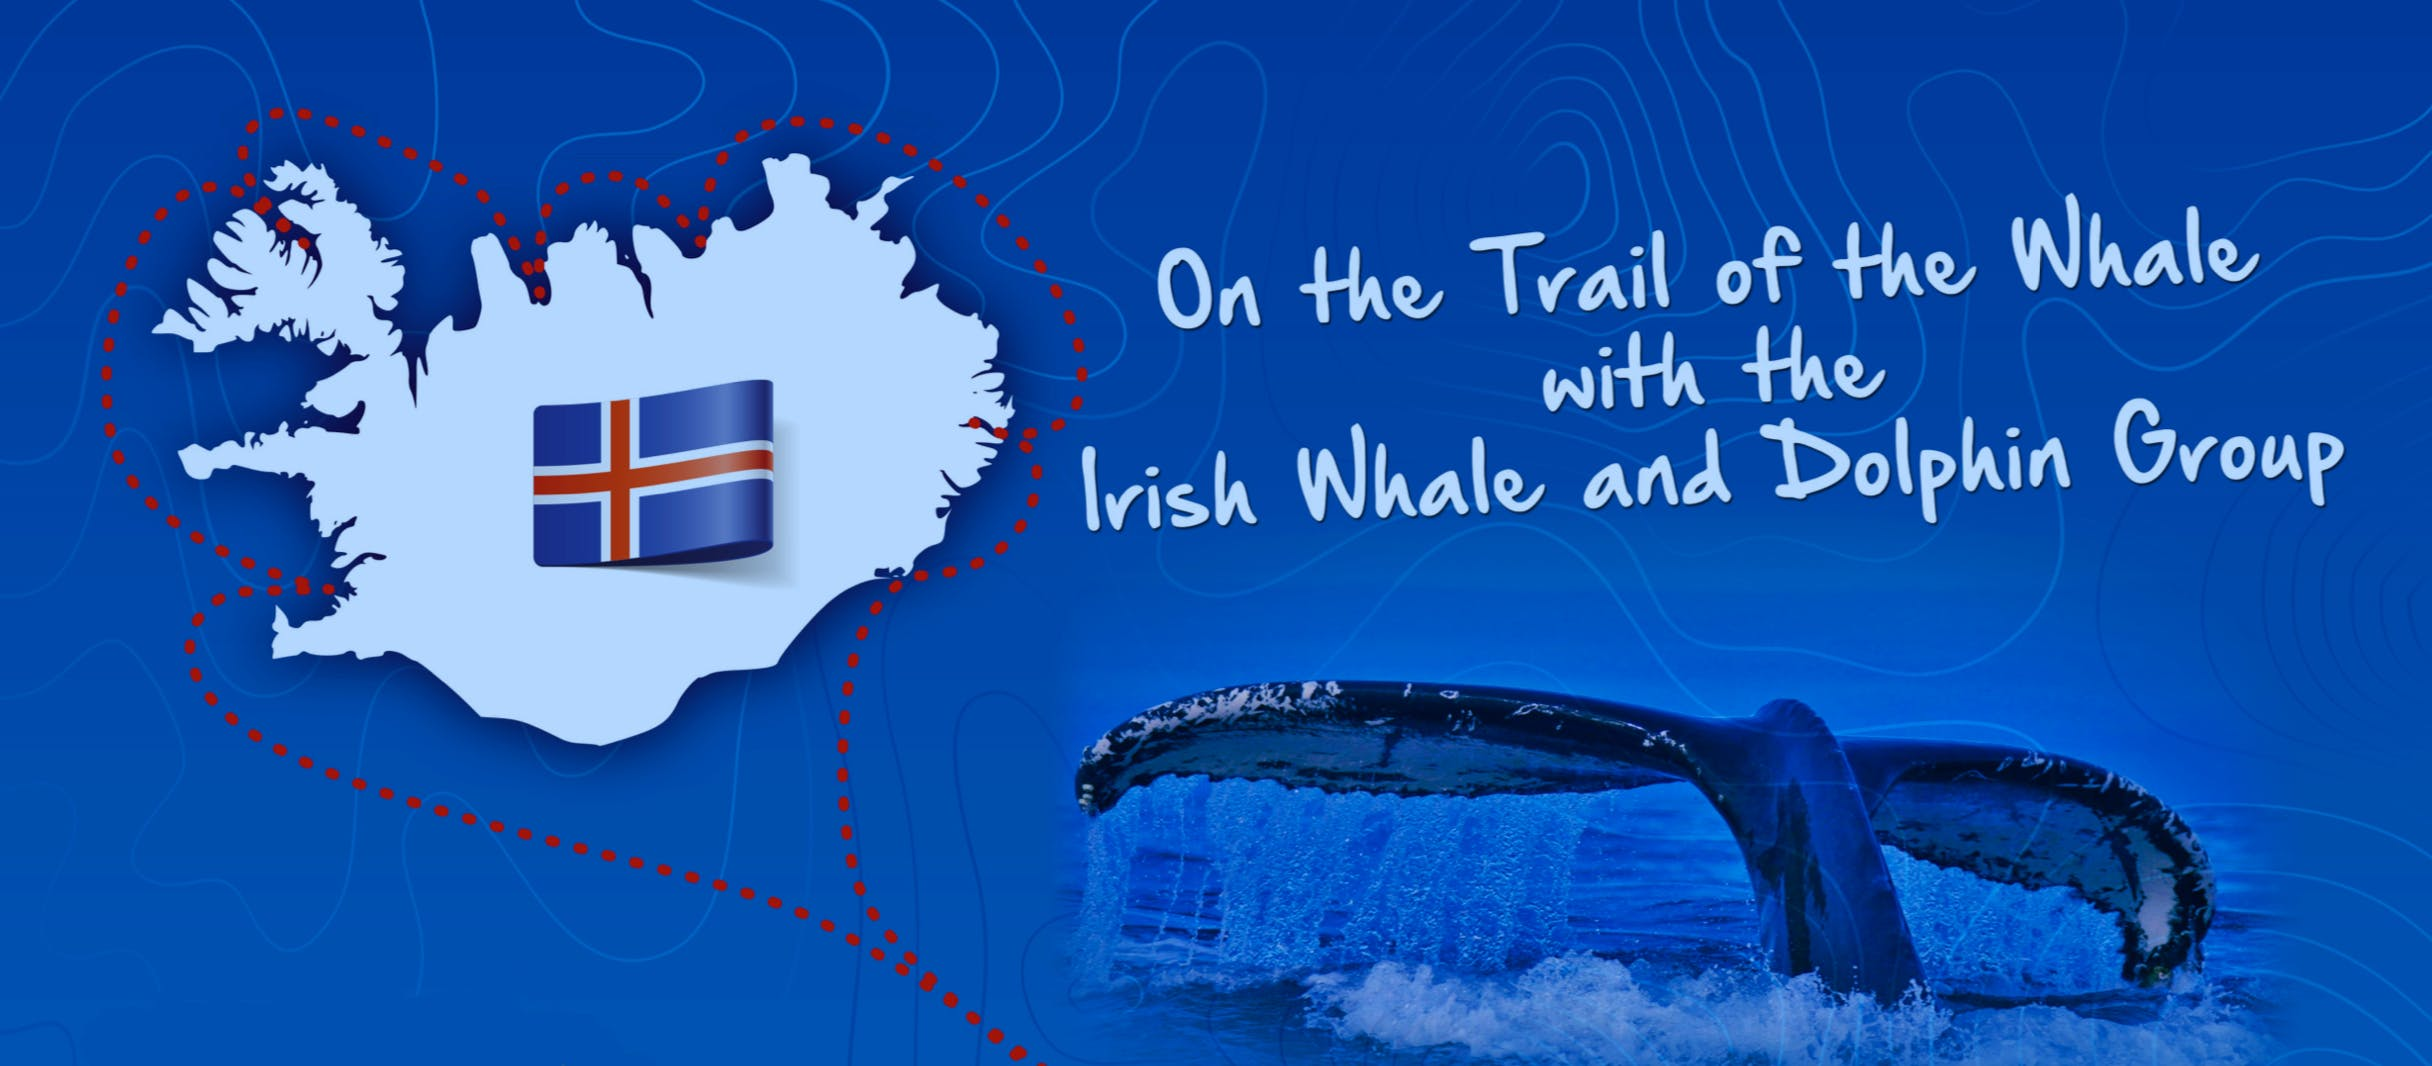 On The Trail of the Whale Library Tour - Location: Killarney